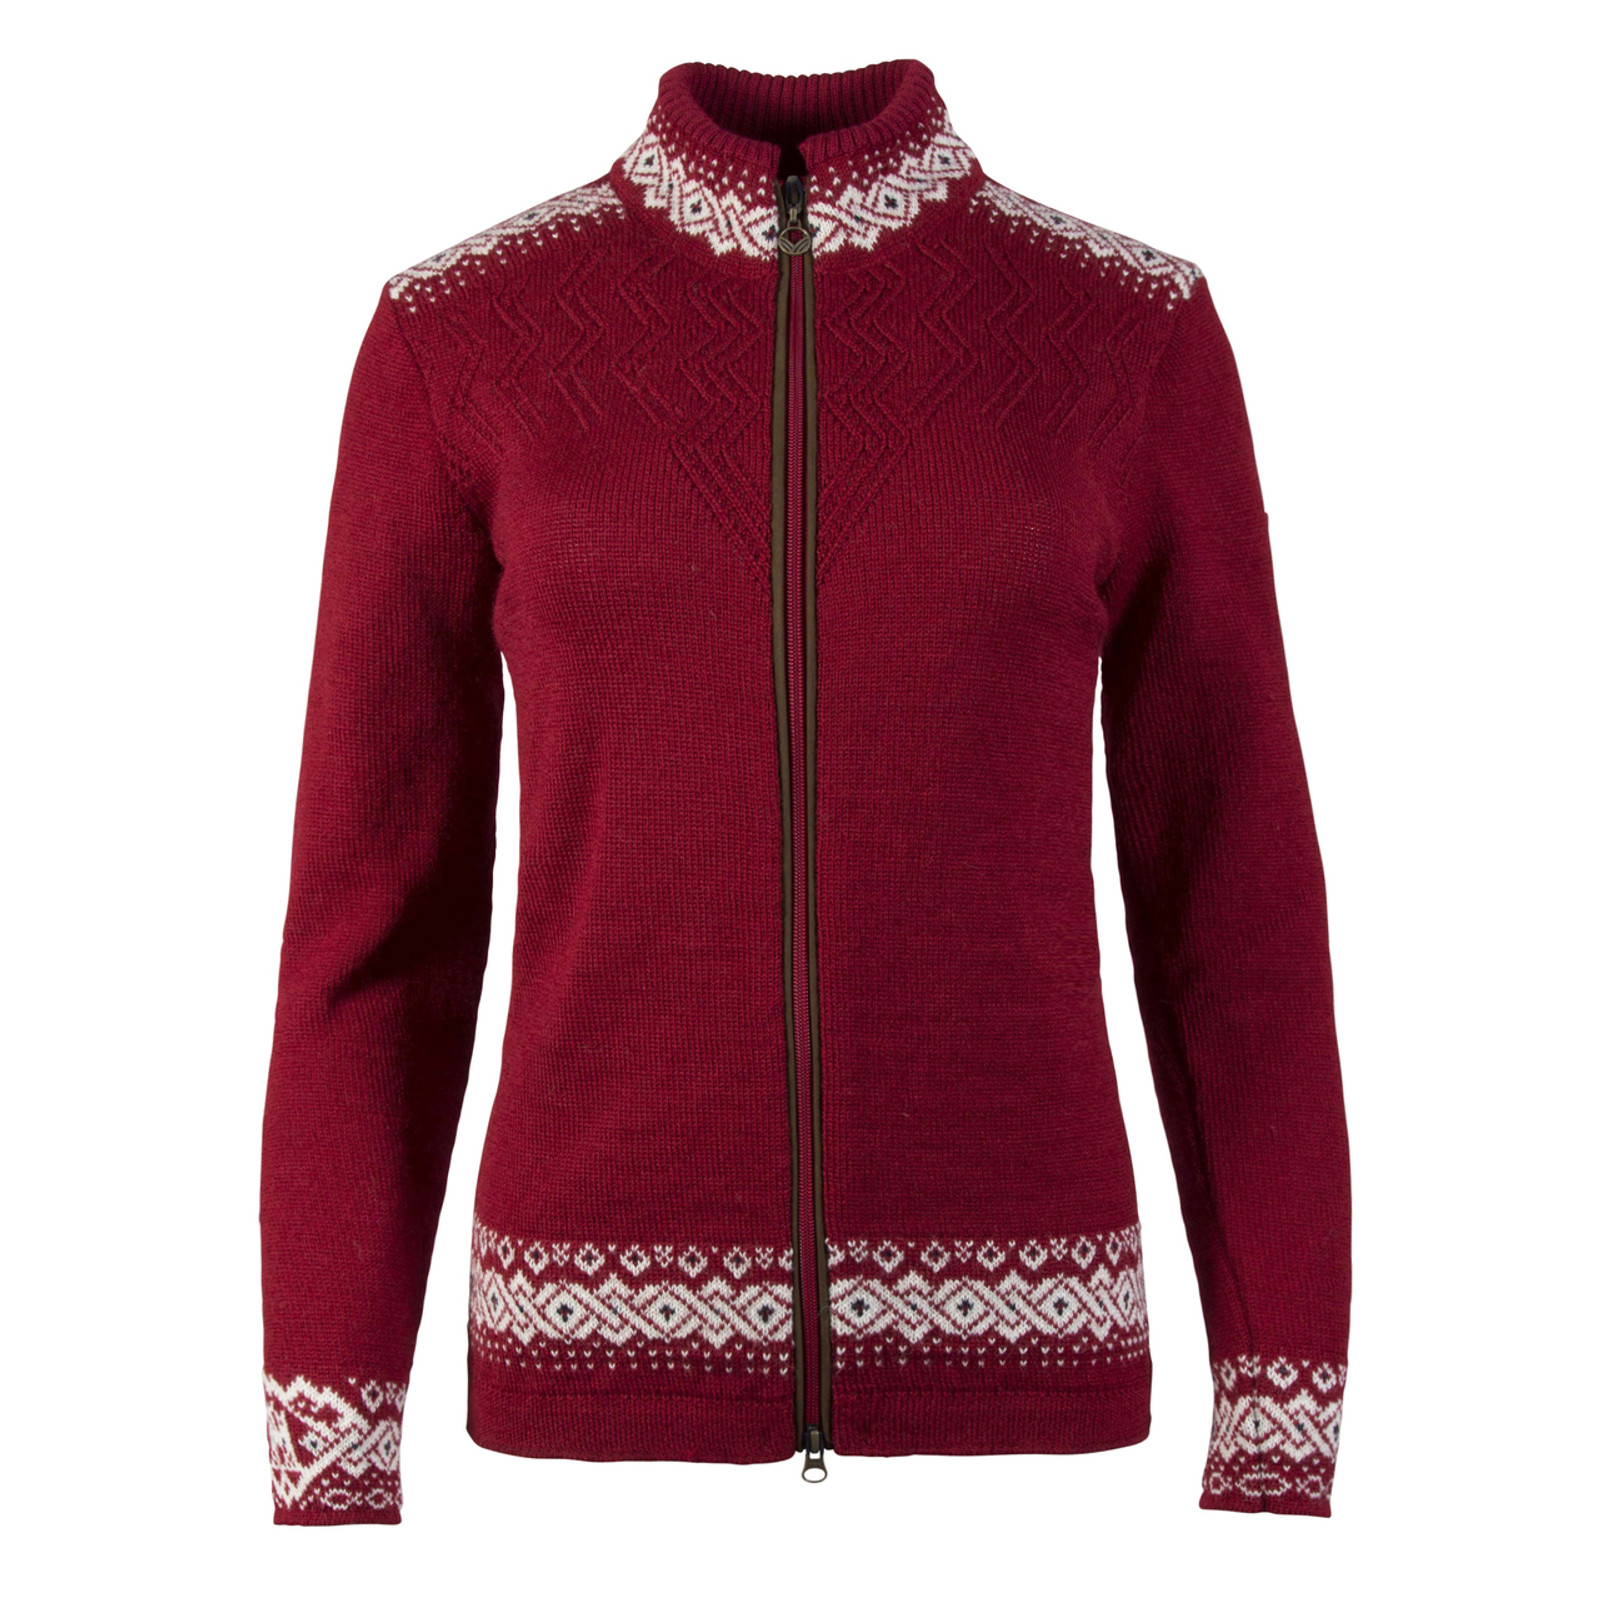 Dale of Norway Bergen  cardigan, ladies, Red Rose/Off White/Navy, 83181-B, on sale at The Nordic Shop